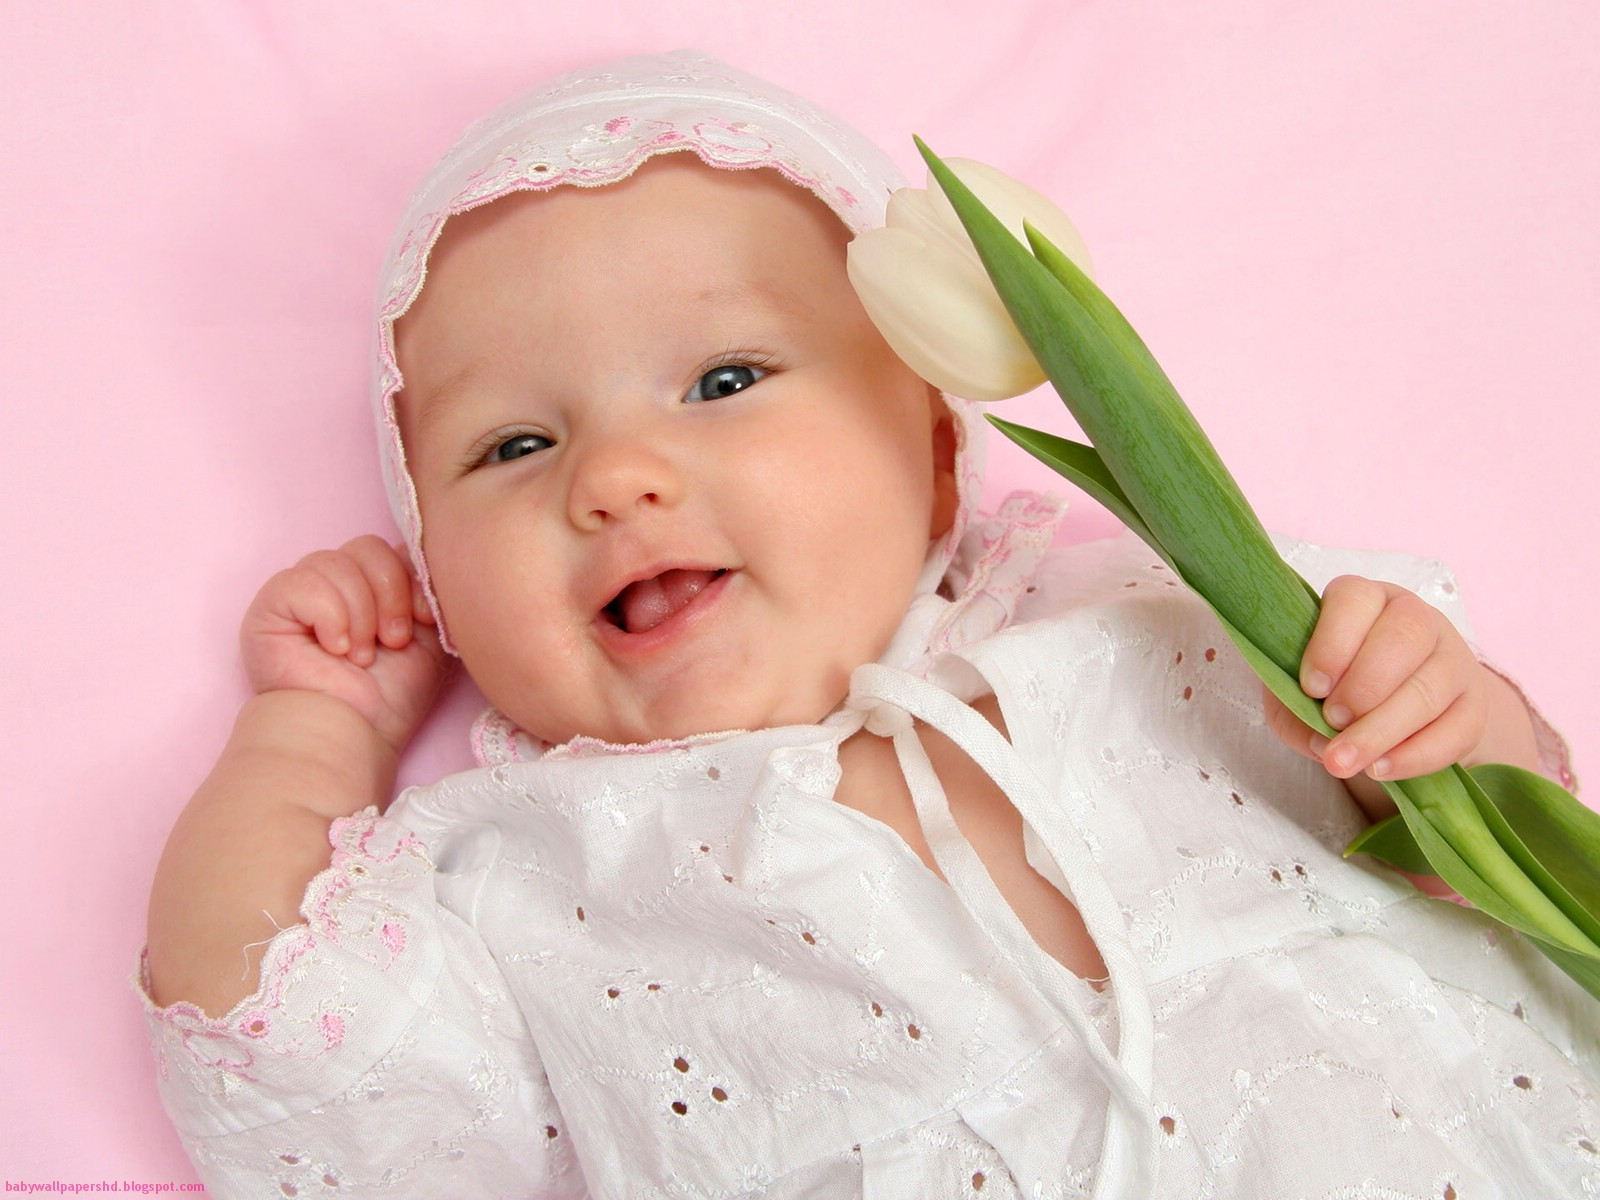 http://4.bp.blogspot.com/-mdTlZb7t474/TmUEuEokLCI/AAAAAAAAFBc/M0mGDPH4uVY/s1600/Cute+baby+girl+wallpapers+for+facebook2.jpg